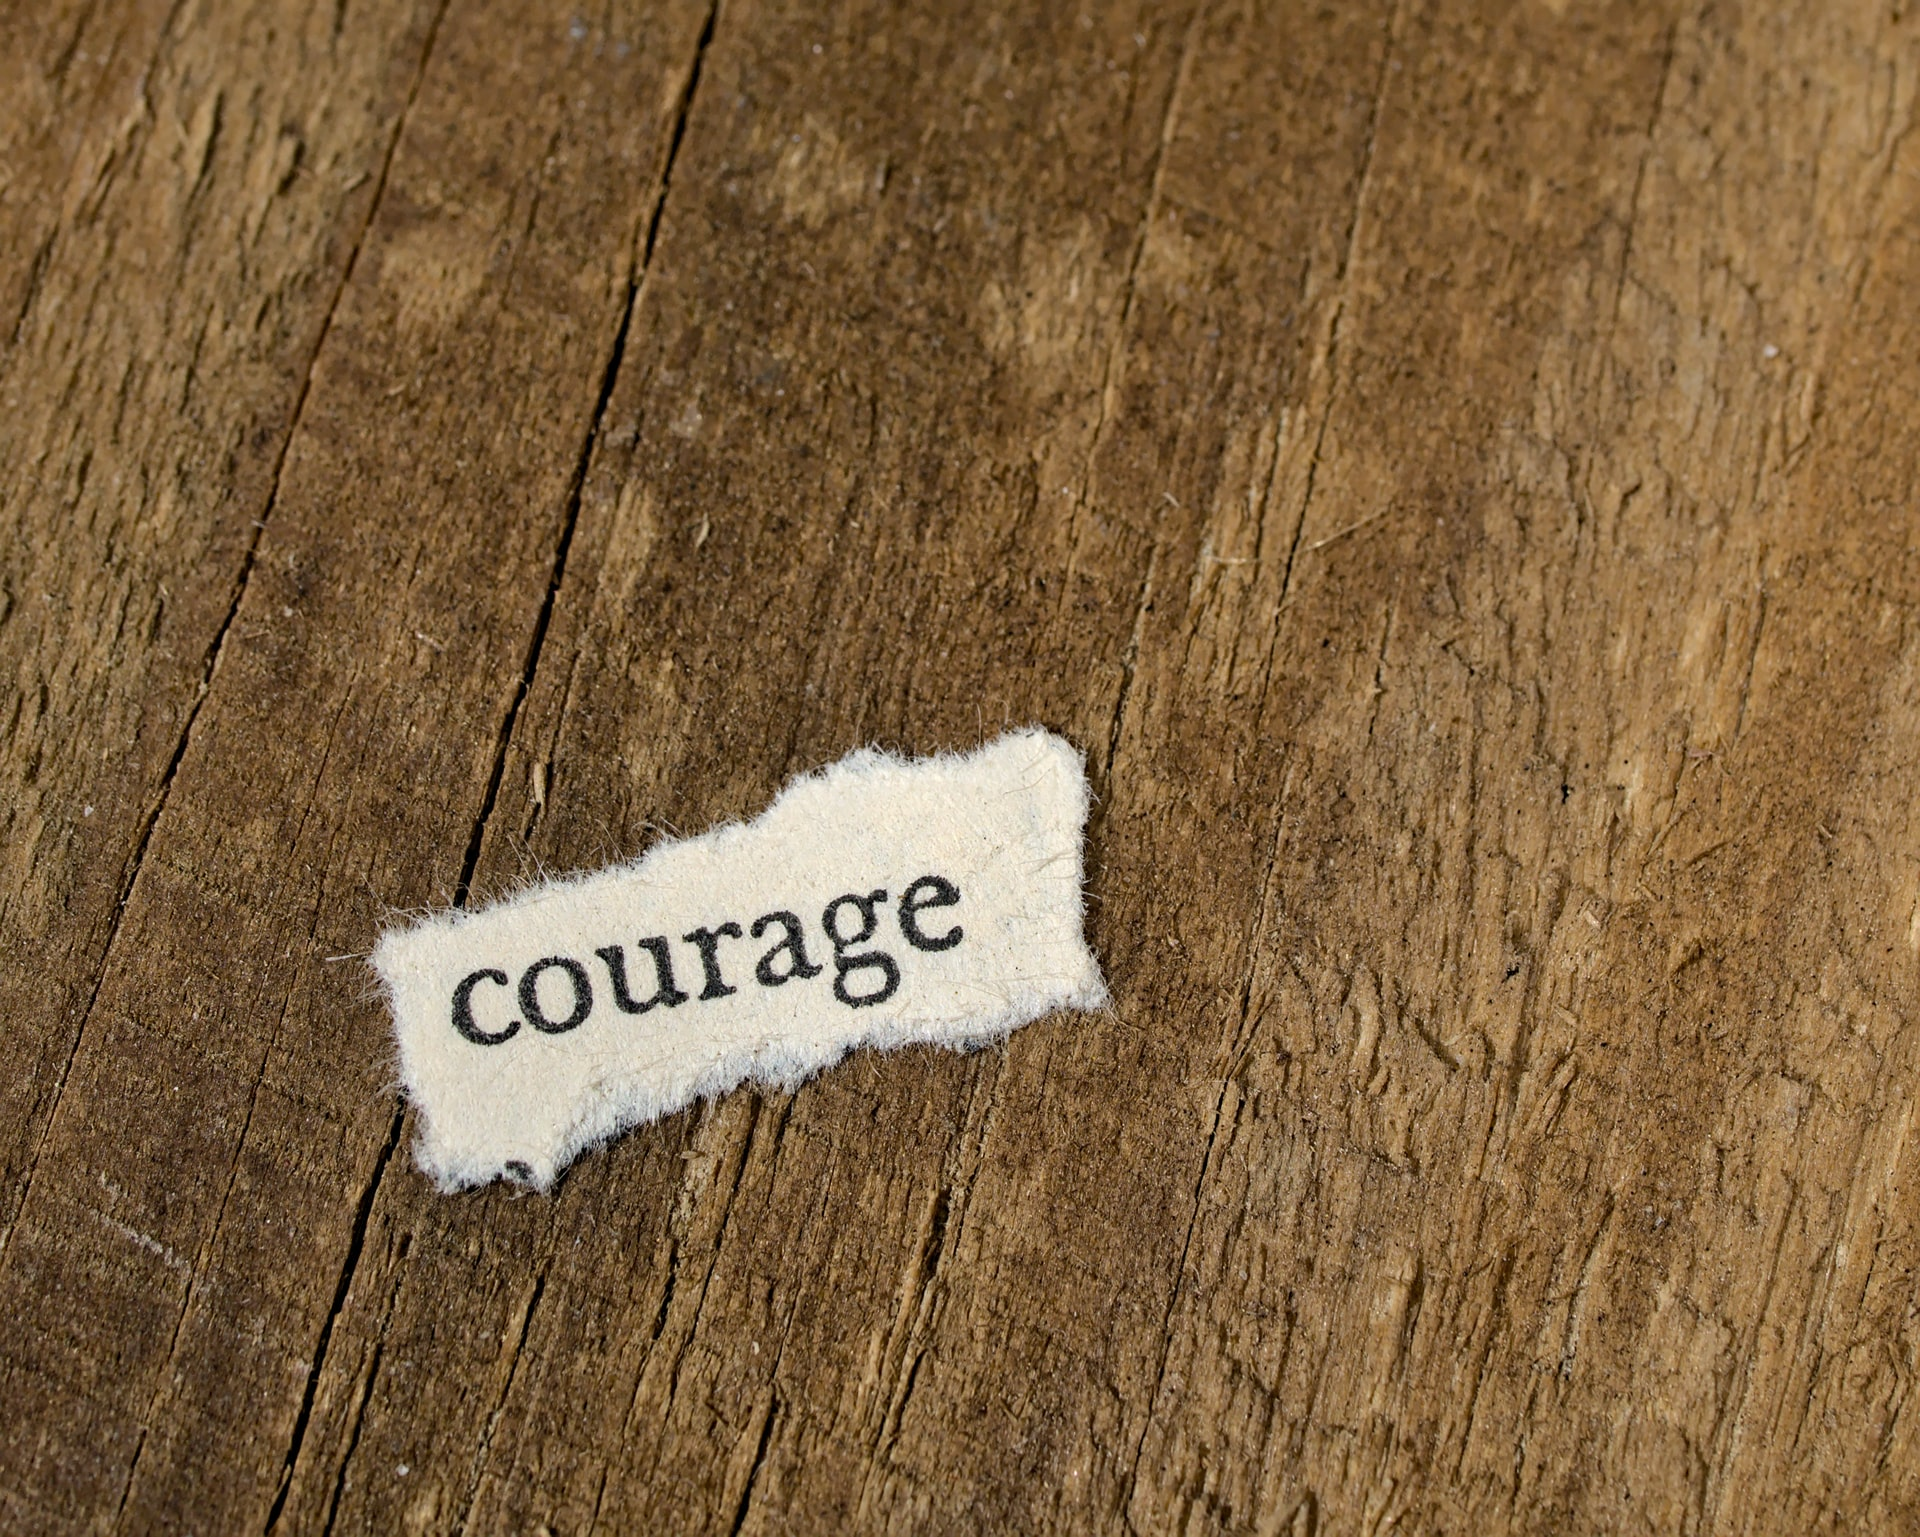 The word courage on scrap of paper on wood